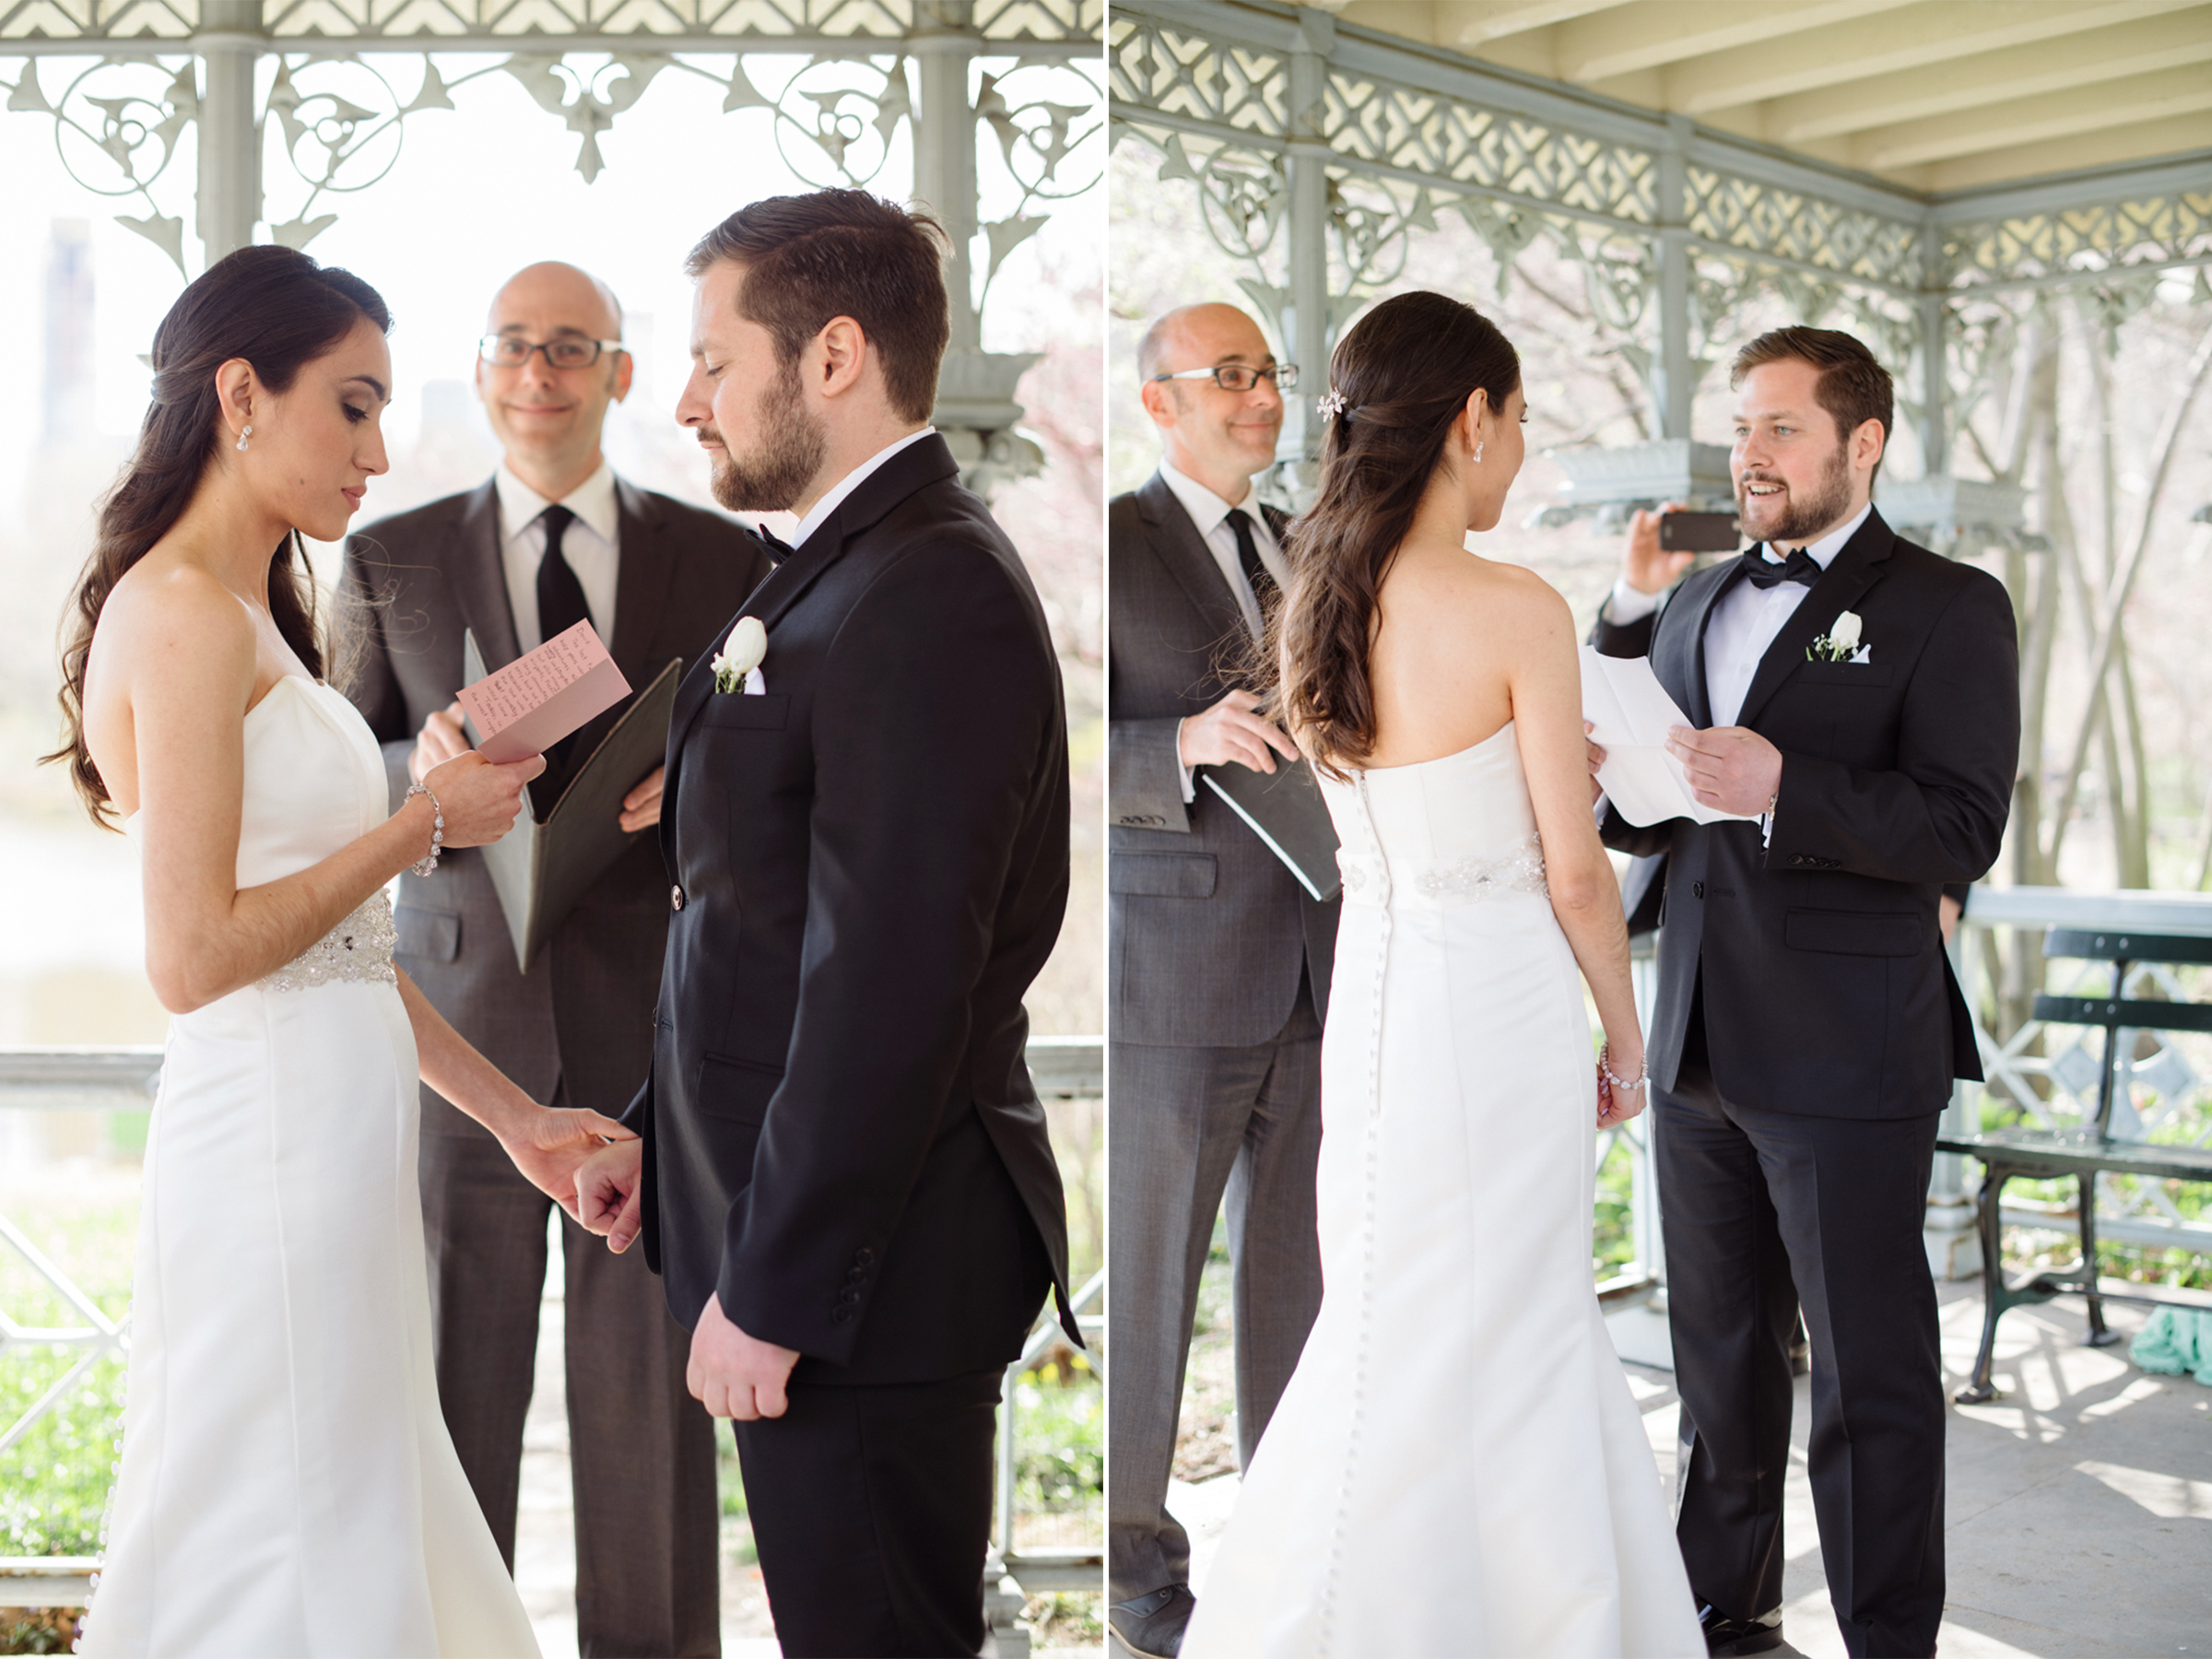 Anahi+David- Central Park Elopement Reciting Vows- New York City- Olivia Christina Photo.jpg